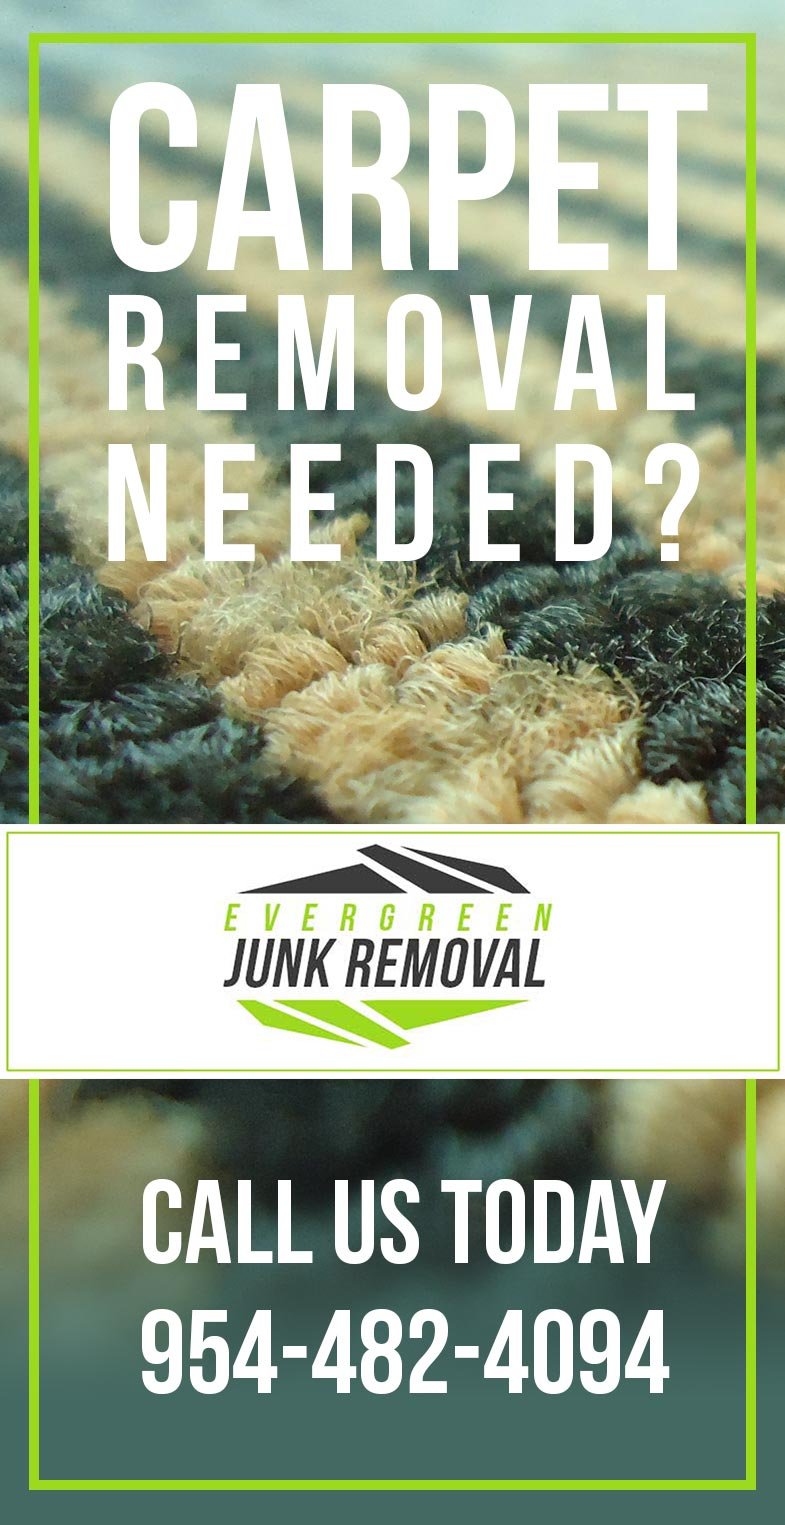 Pembroke Pines Carpet Removal Service